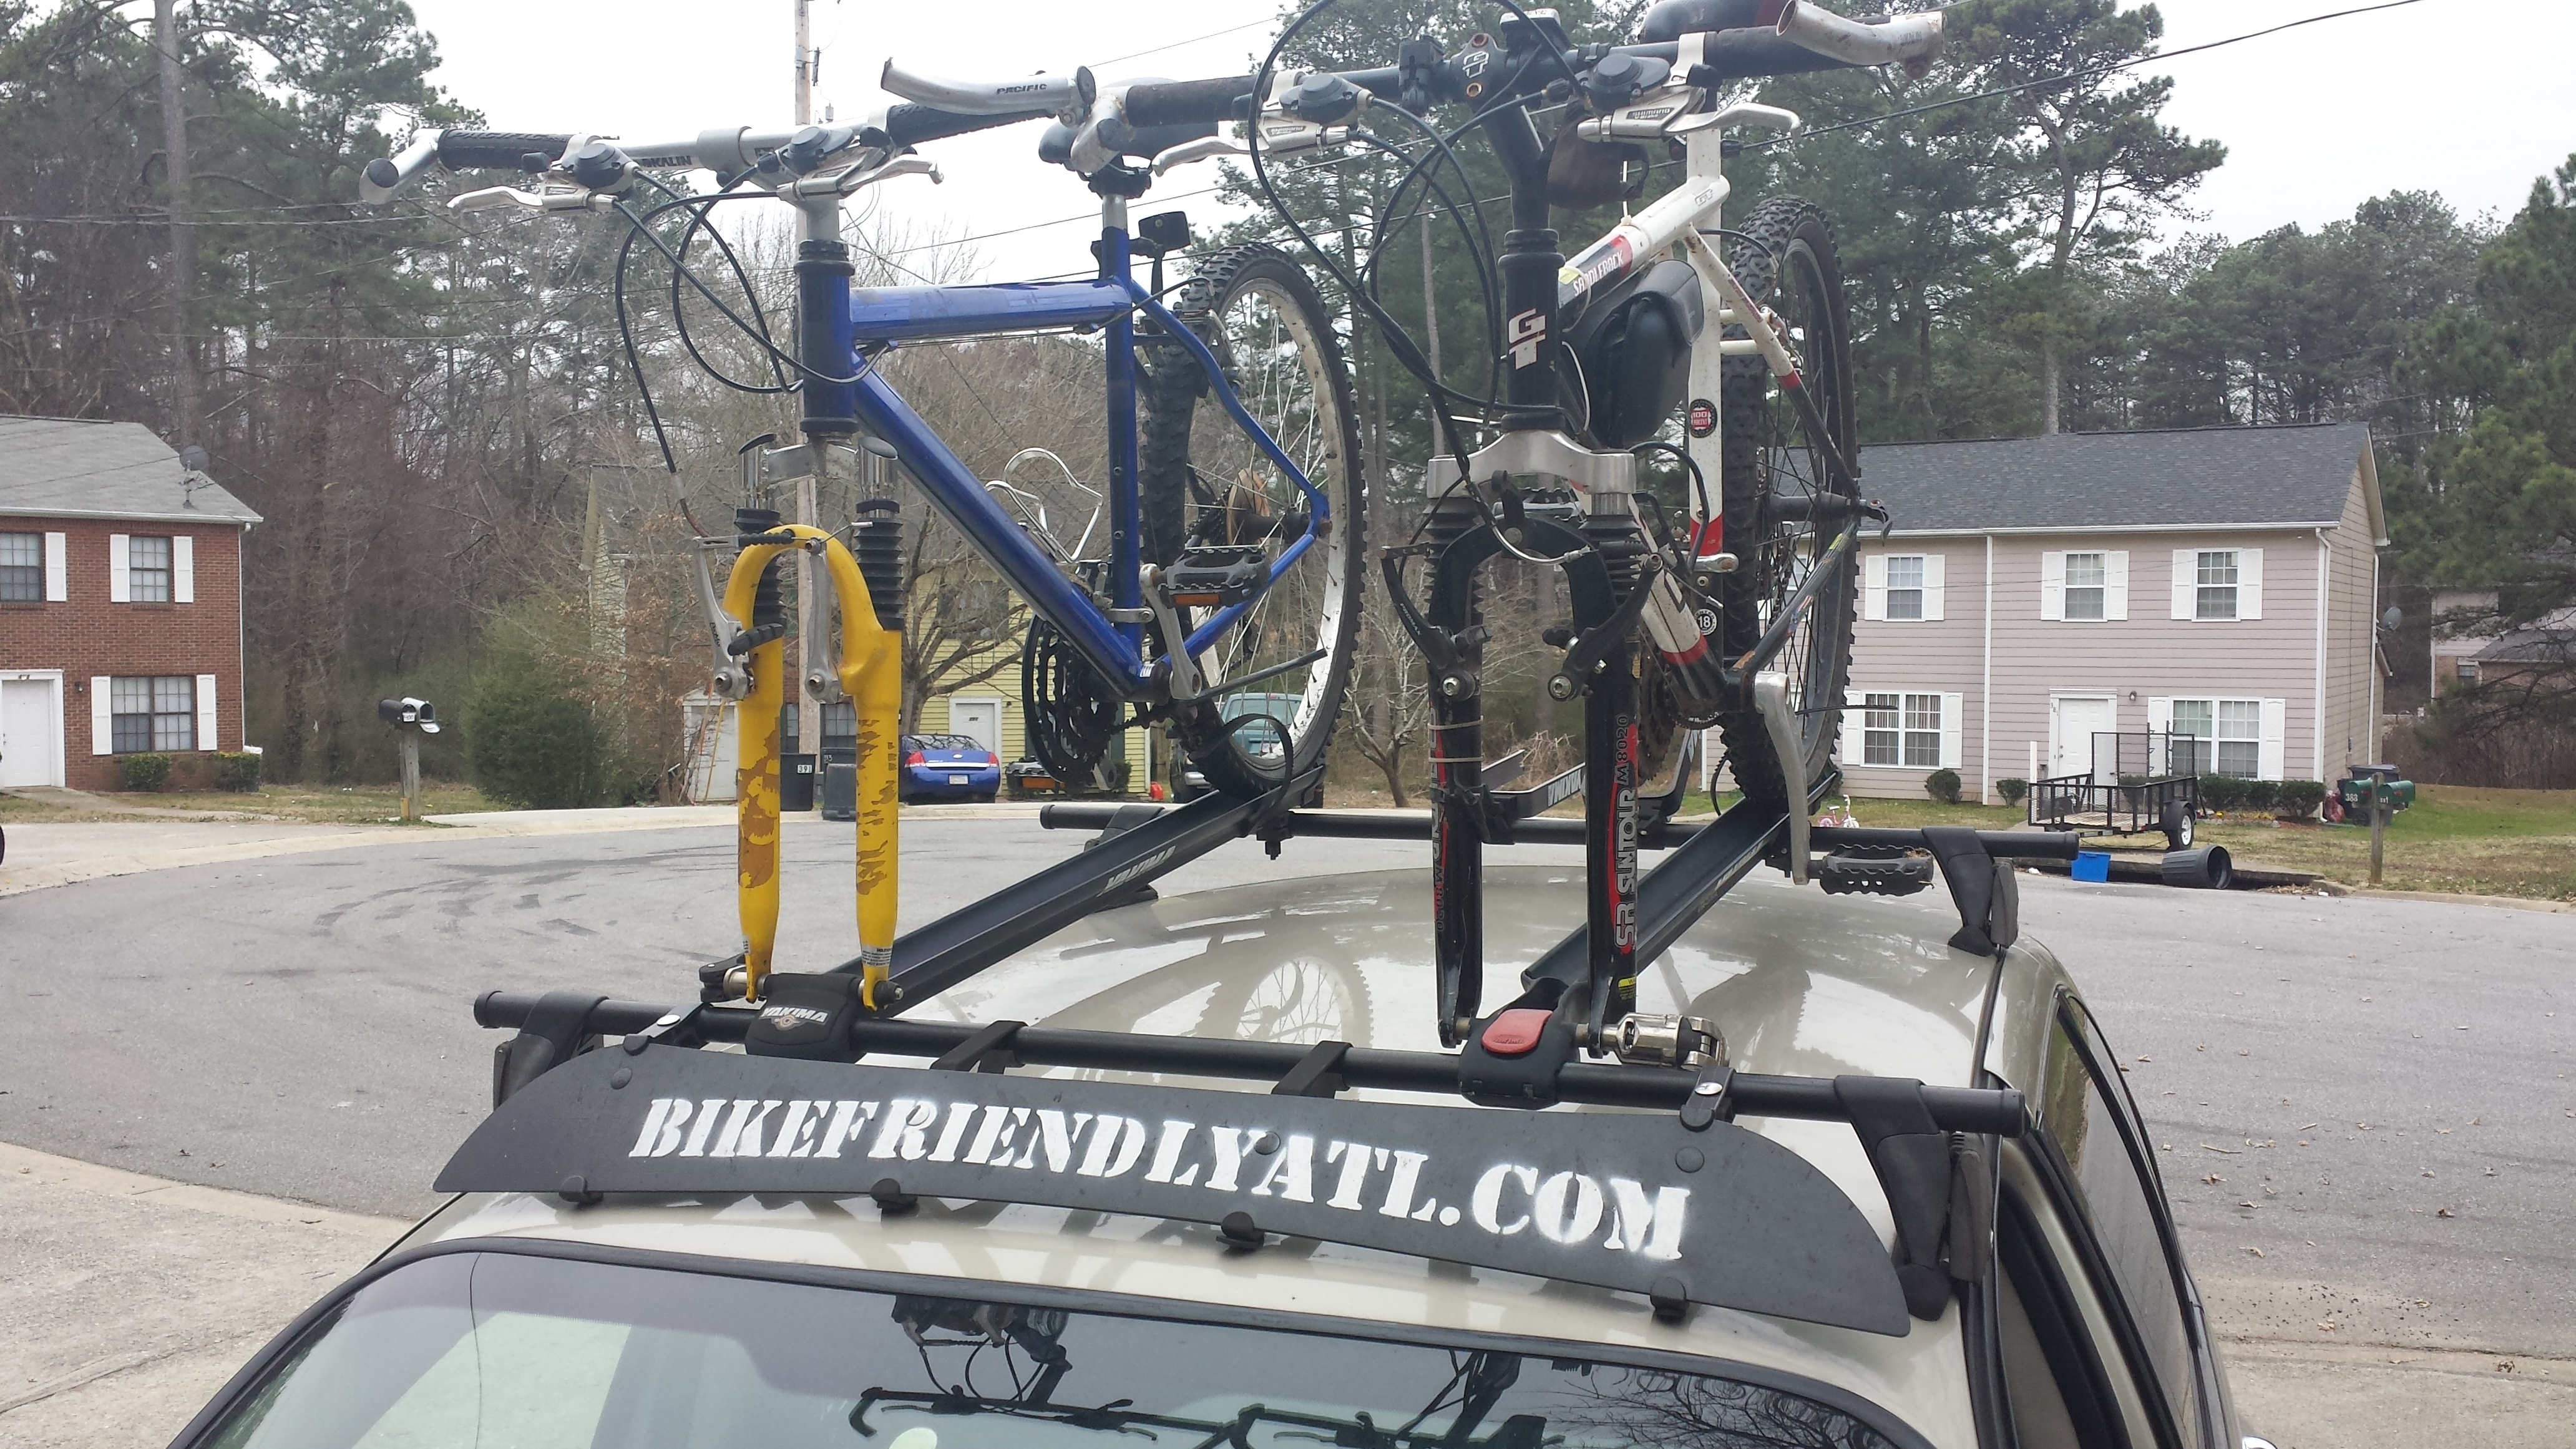 Picked up 2 donated bikes